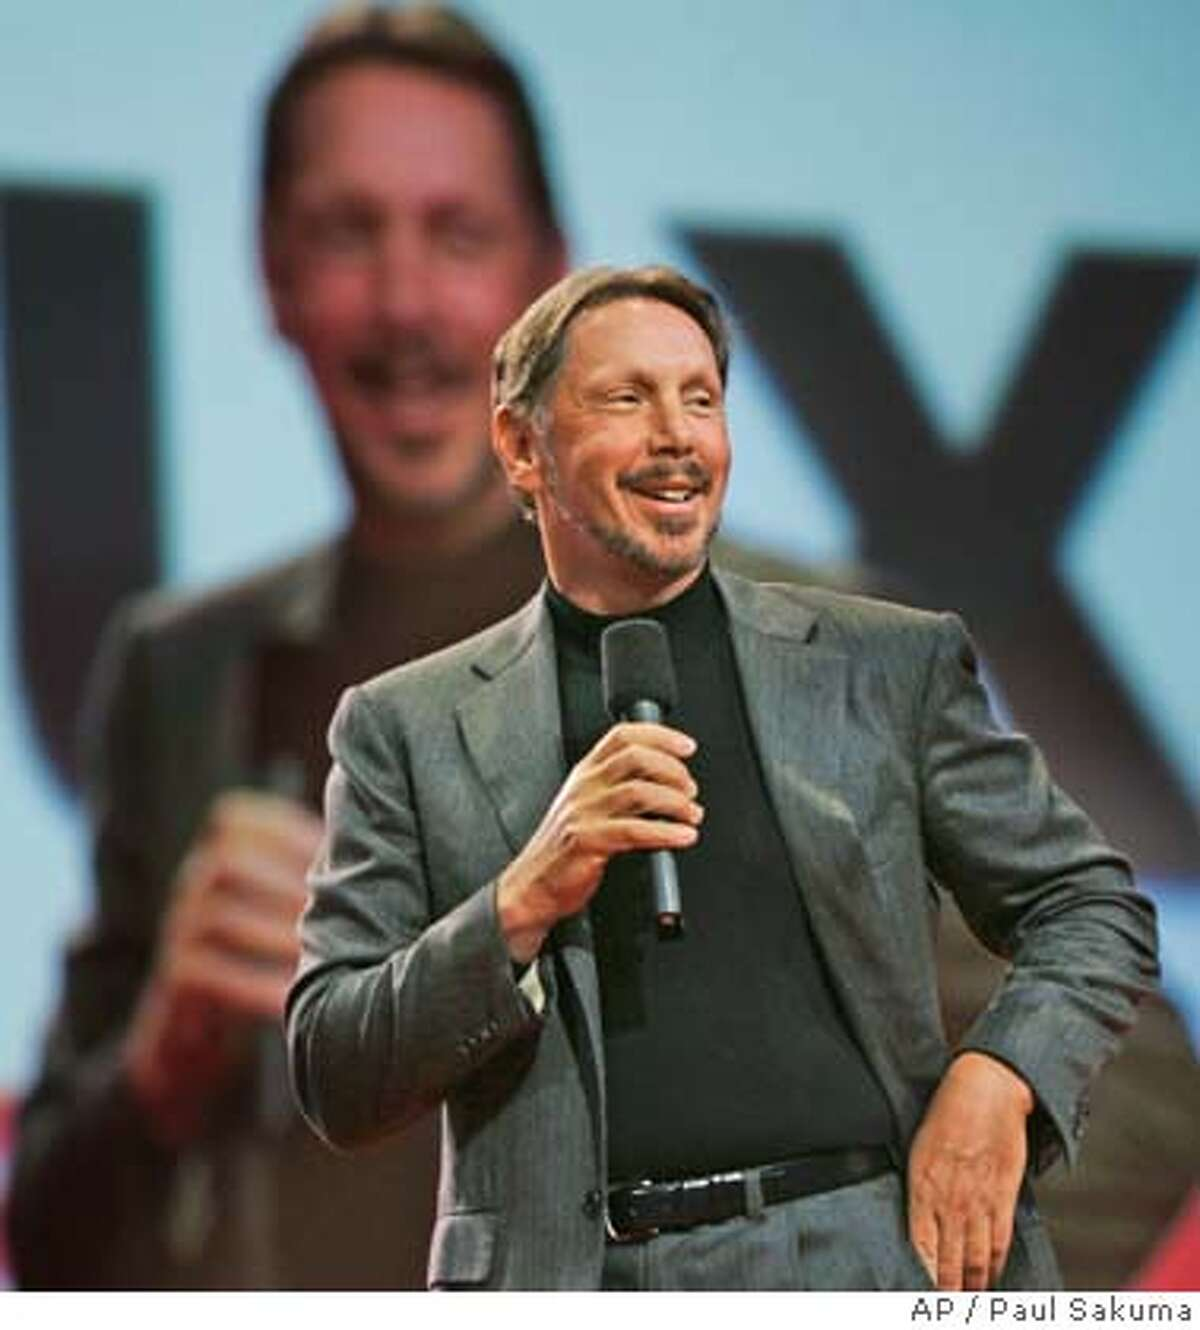 Oracle CEO Larry Ellison smiles during the Oracle Open World conference in San Francisco, Wednesday, Oct. 25, 2006. Oracle Corp. is scheduled to report fiscal second-quarter earnings after the bell. (AP Photo/Paul Sakuma) Ran on: 12-19-2006 Oracle CEO Larry Ellison says he wants to buy only those companies that will boost the bottom line by 20 percent a year.